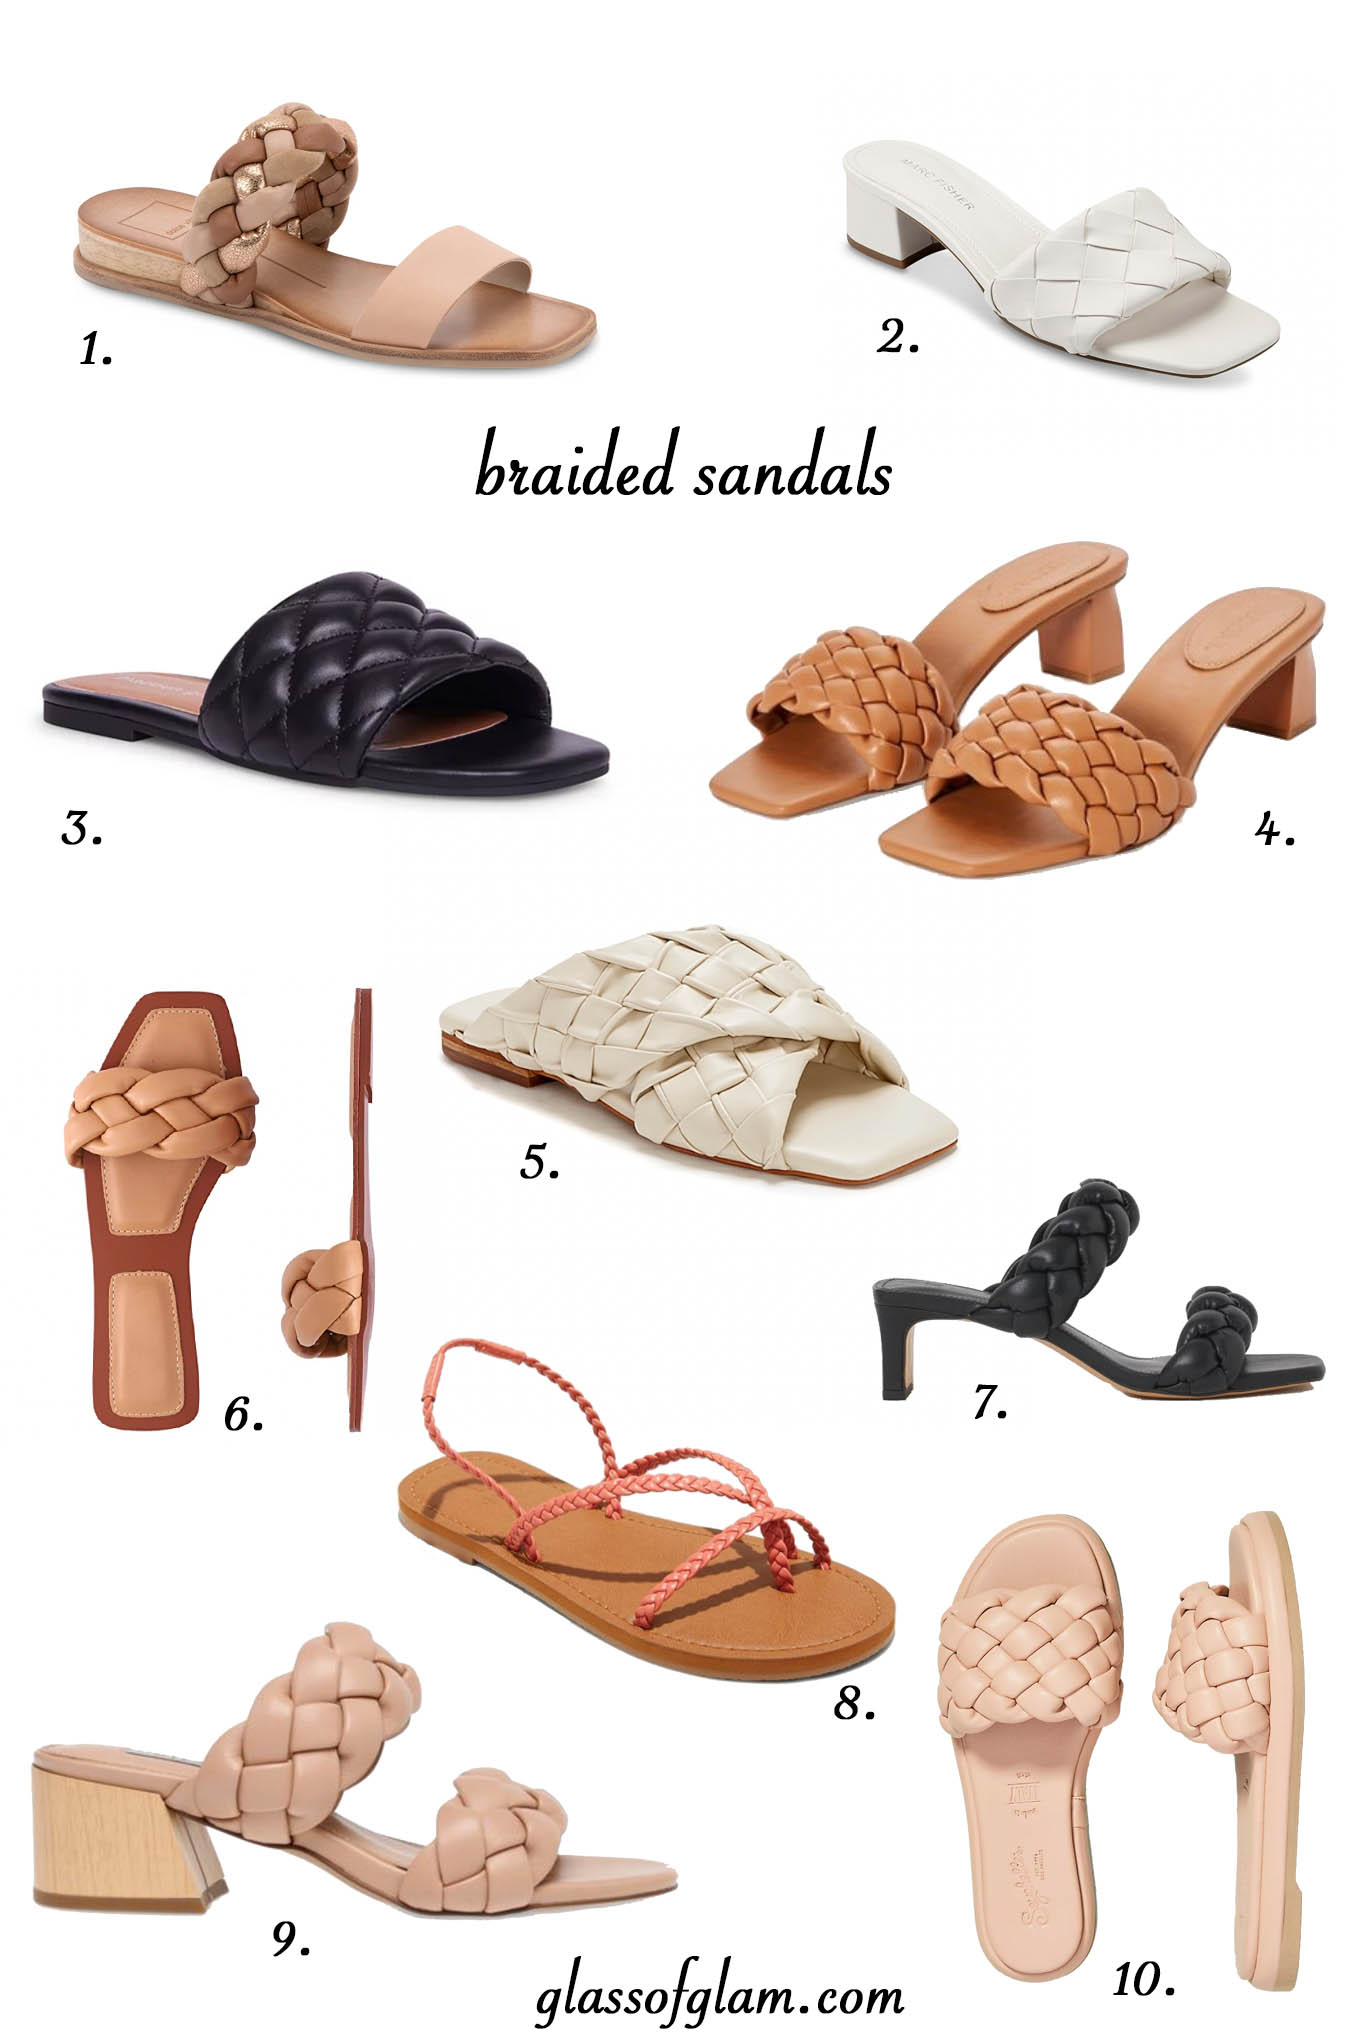 Braided Sandals by popular Chicago fashion blog, Glass of Glam: collage image of braided sandals.